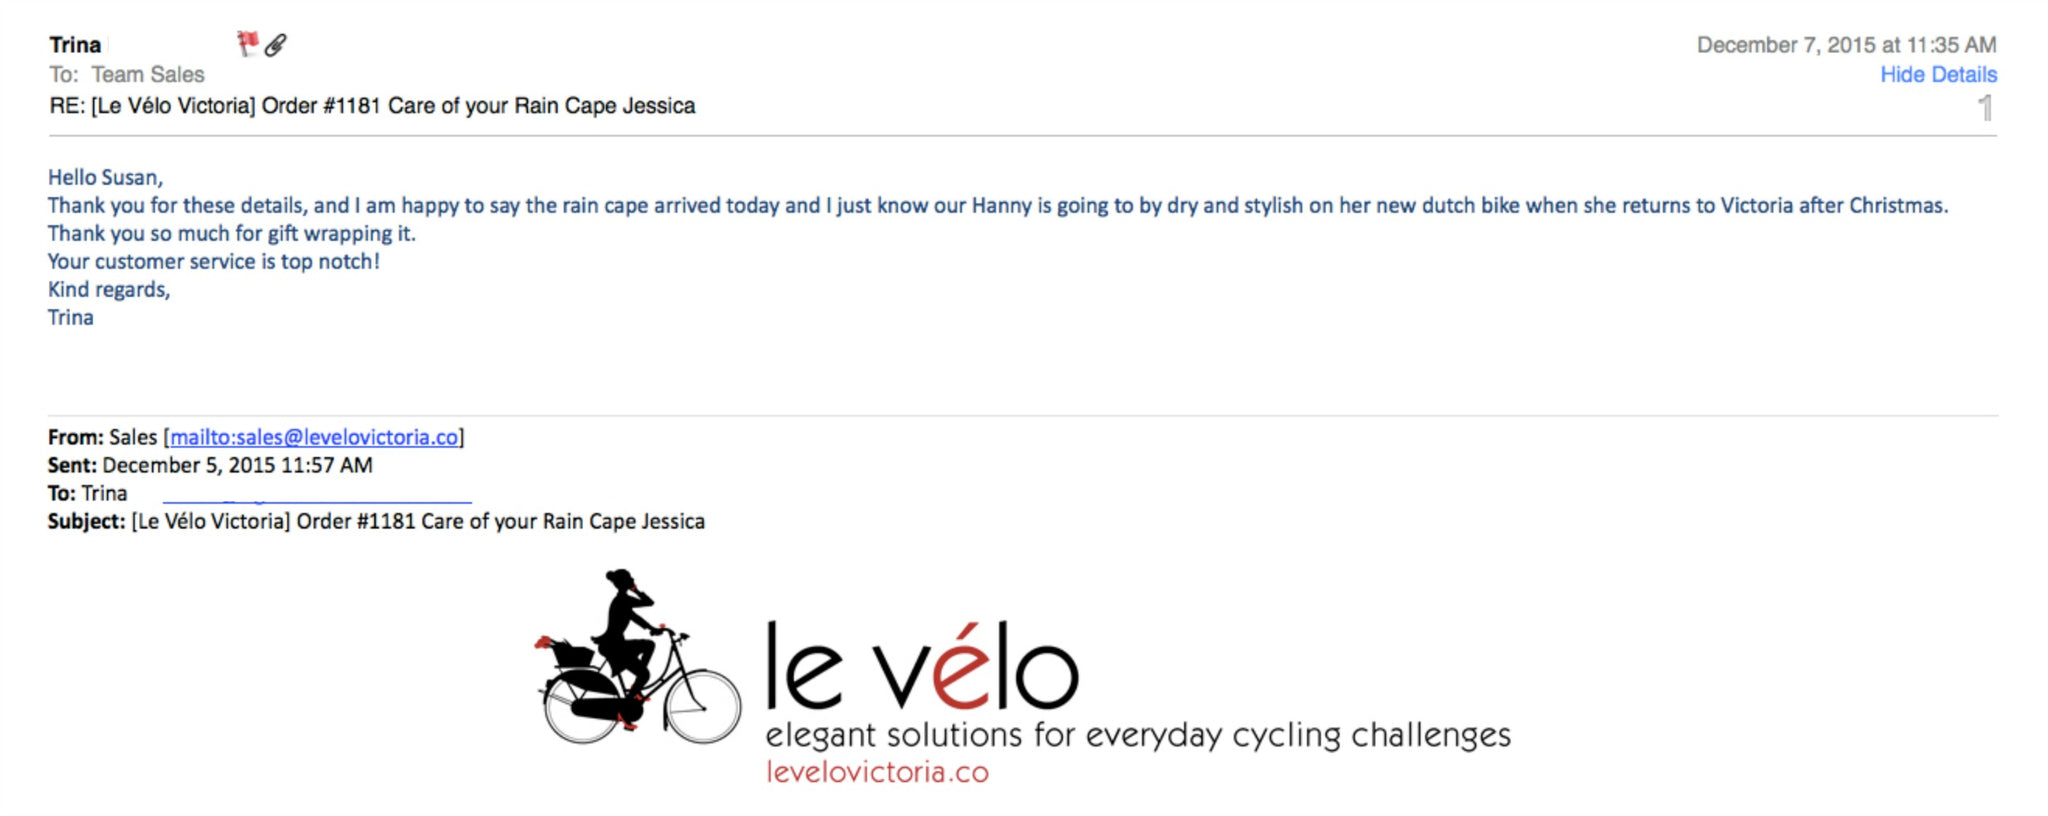 Customer testimonial at le velo victoria for HappyRainydays rain capes and ponchos